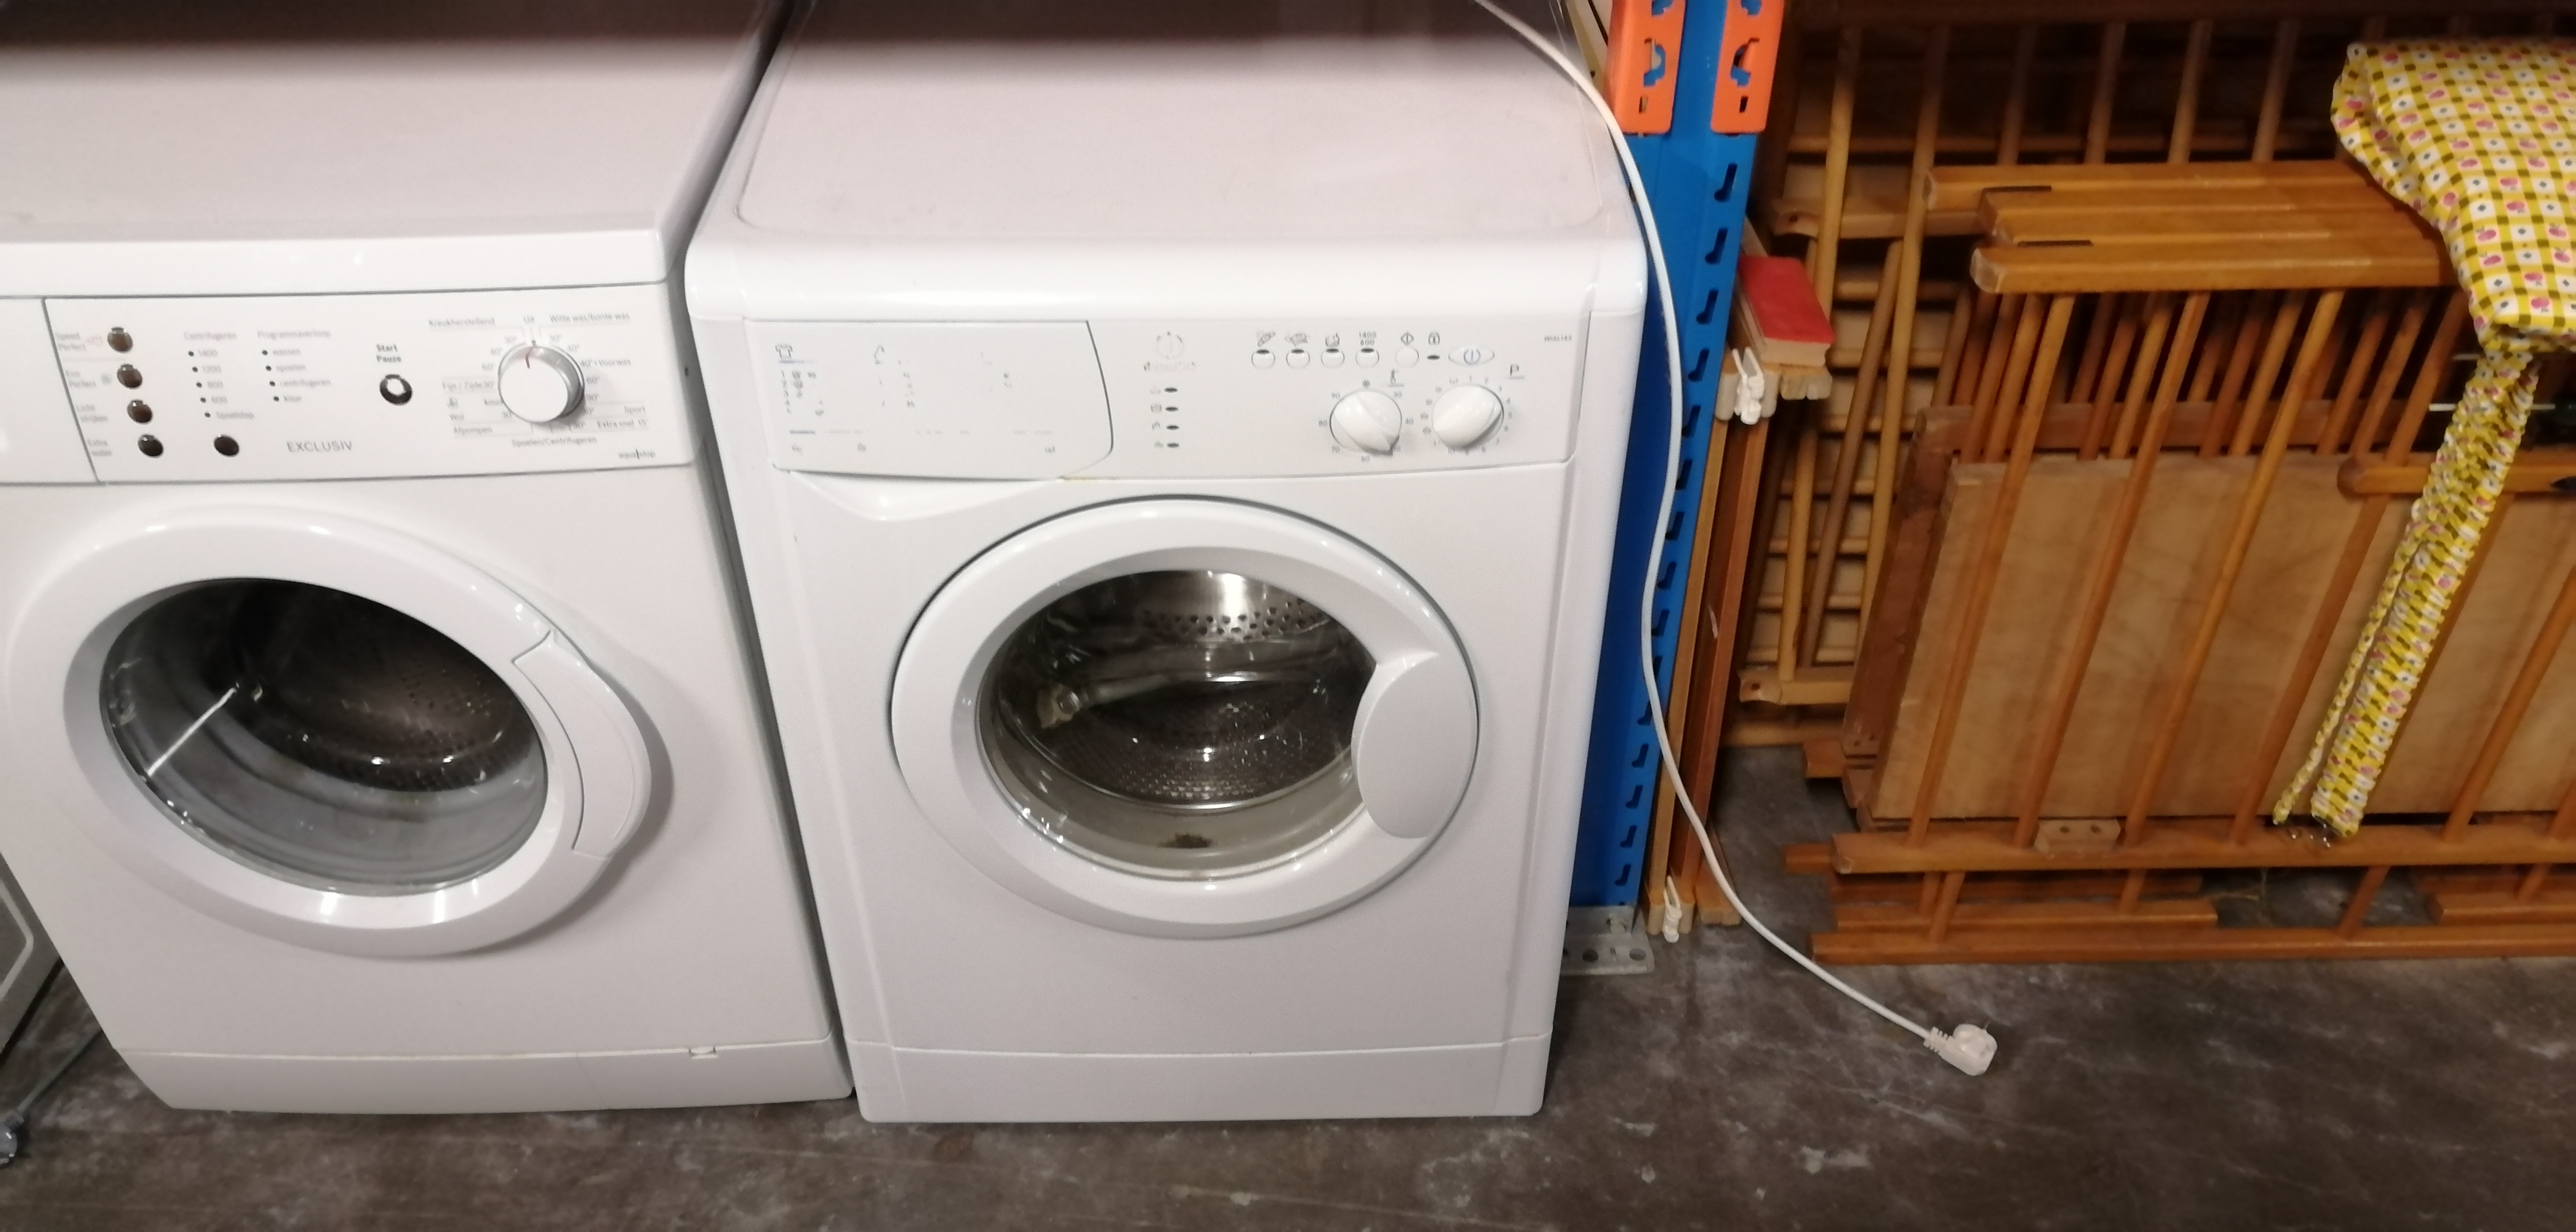 (4463) Indesit wasmachine type nummer: WIAL143